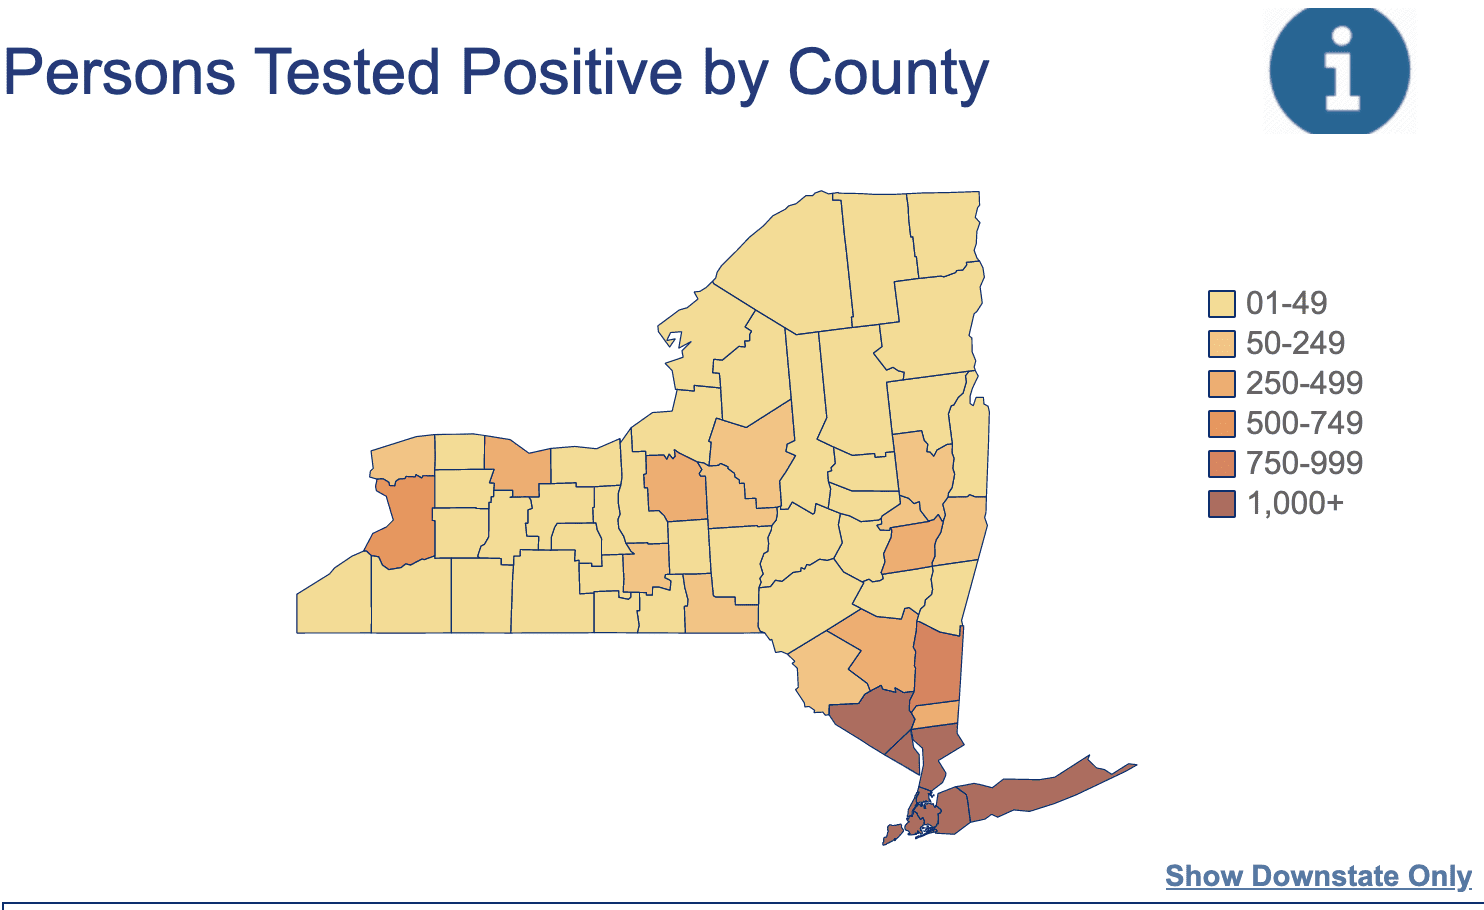 A statewide, county-by-county interactive map of COVID-19